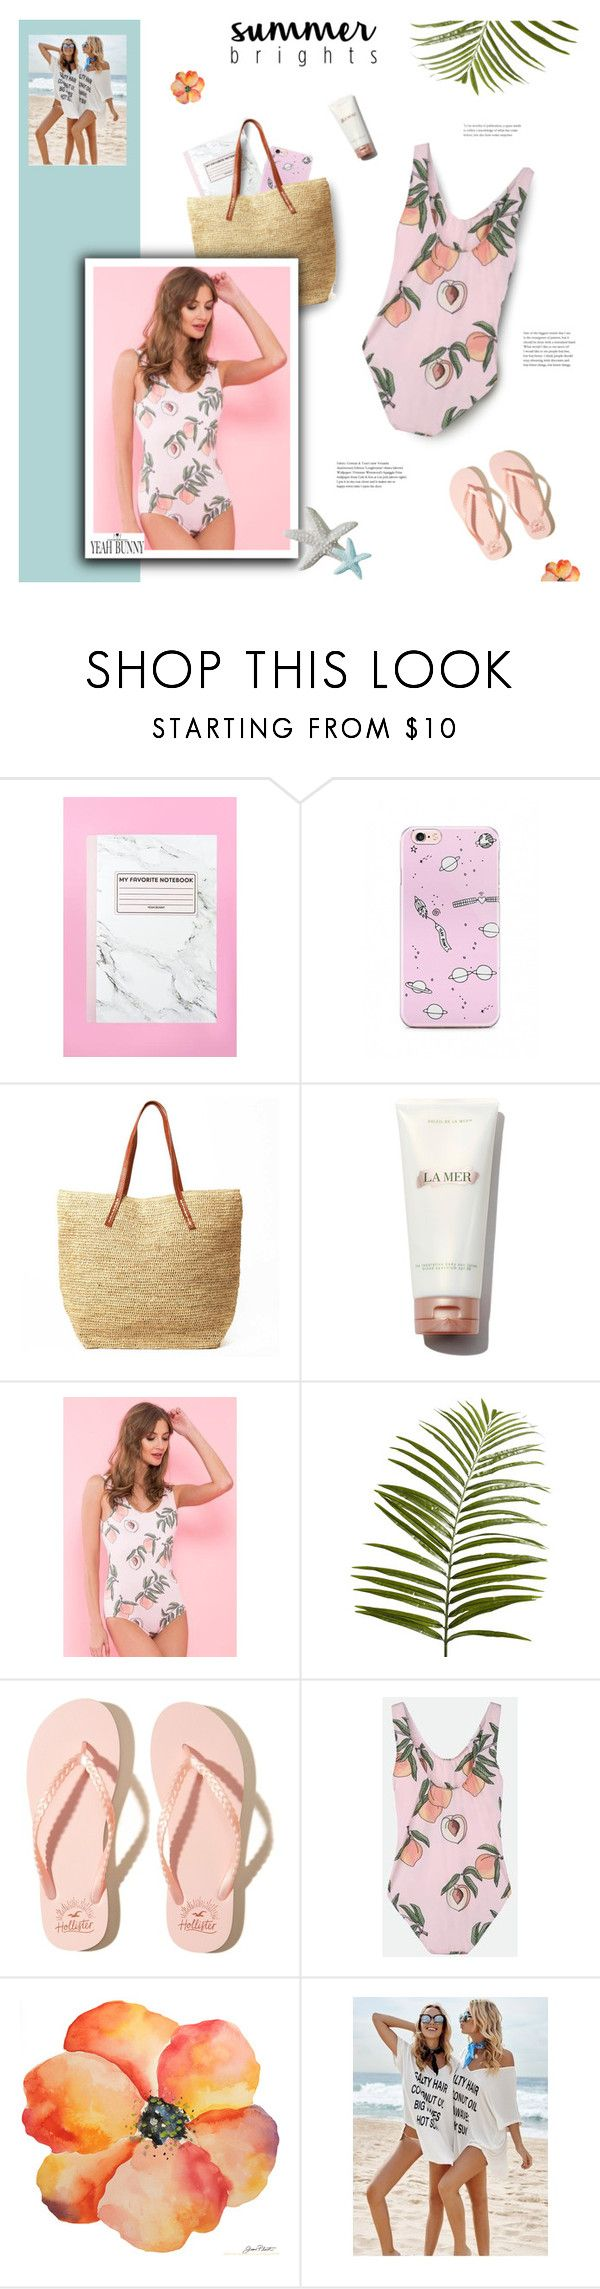 """""""I Still Want To Be Your Friend Even If You're Not A Dinosaur - Yeah Bunny"""" by paradiselemonade ❤ liked on Polyvore featuring Pier 1 Imports, Hollister Co., Yeah Bunny, tumblr and YeahBunny"""